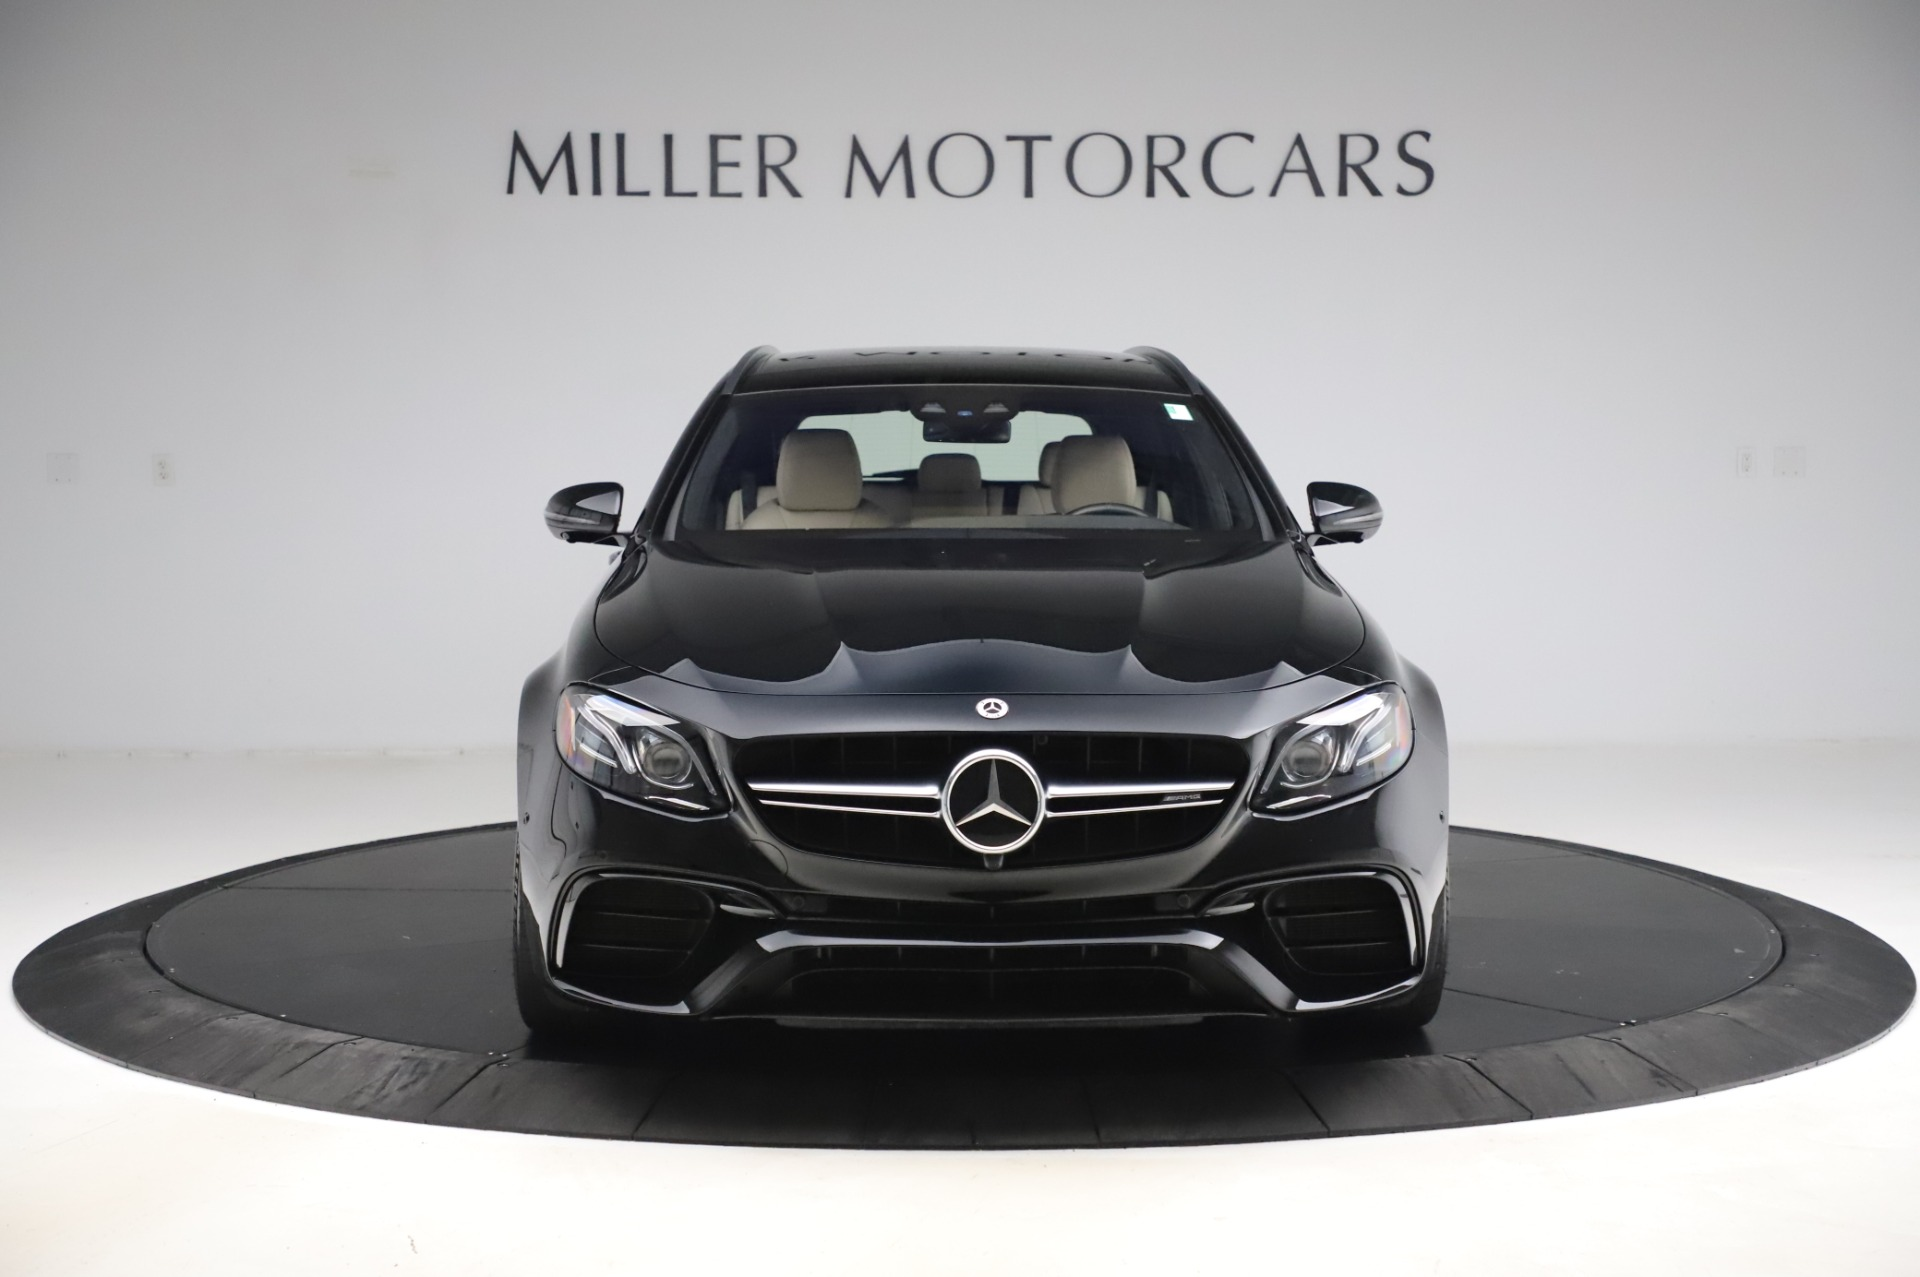 pre owned 2019 mercedes benz e class amg e 63 s for sale special pricing rolls royce motor cars greenwich stock 7929 rolls royce motor cars greenwich